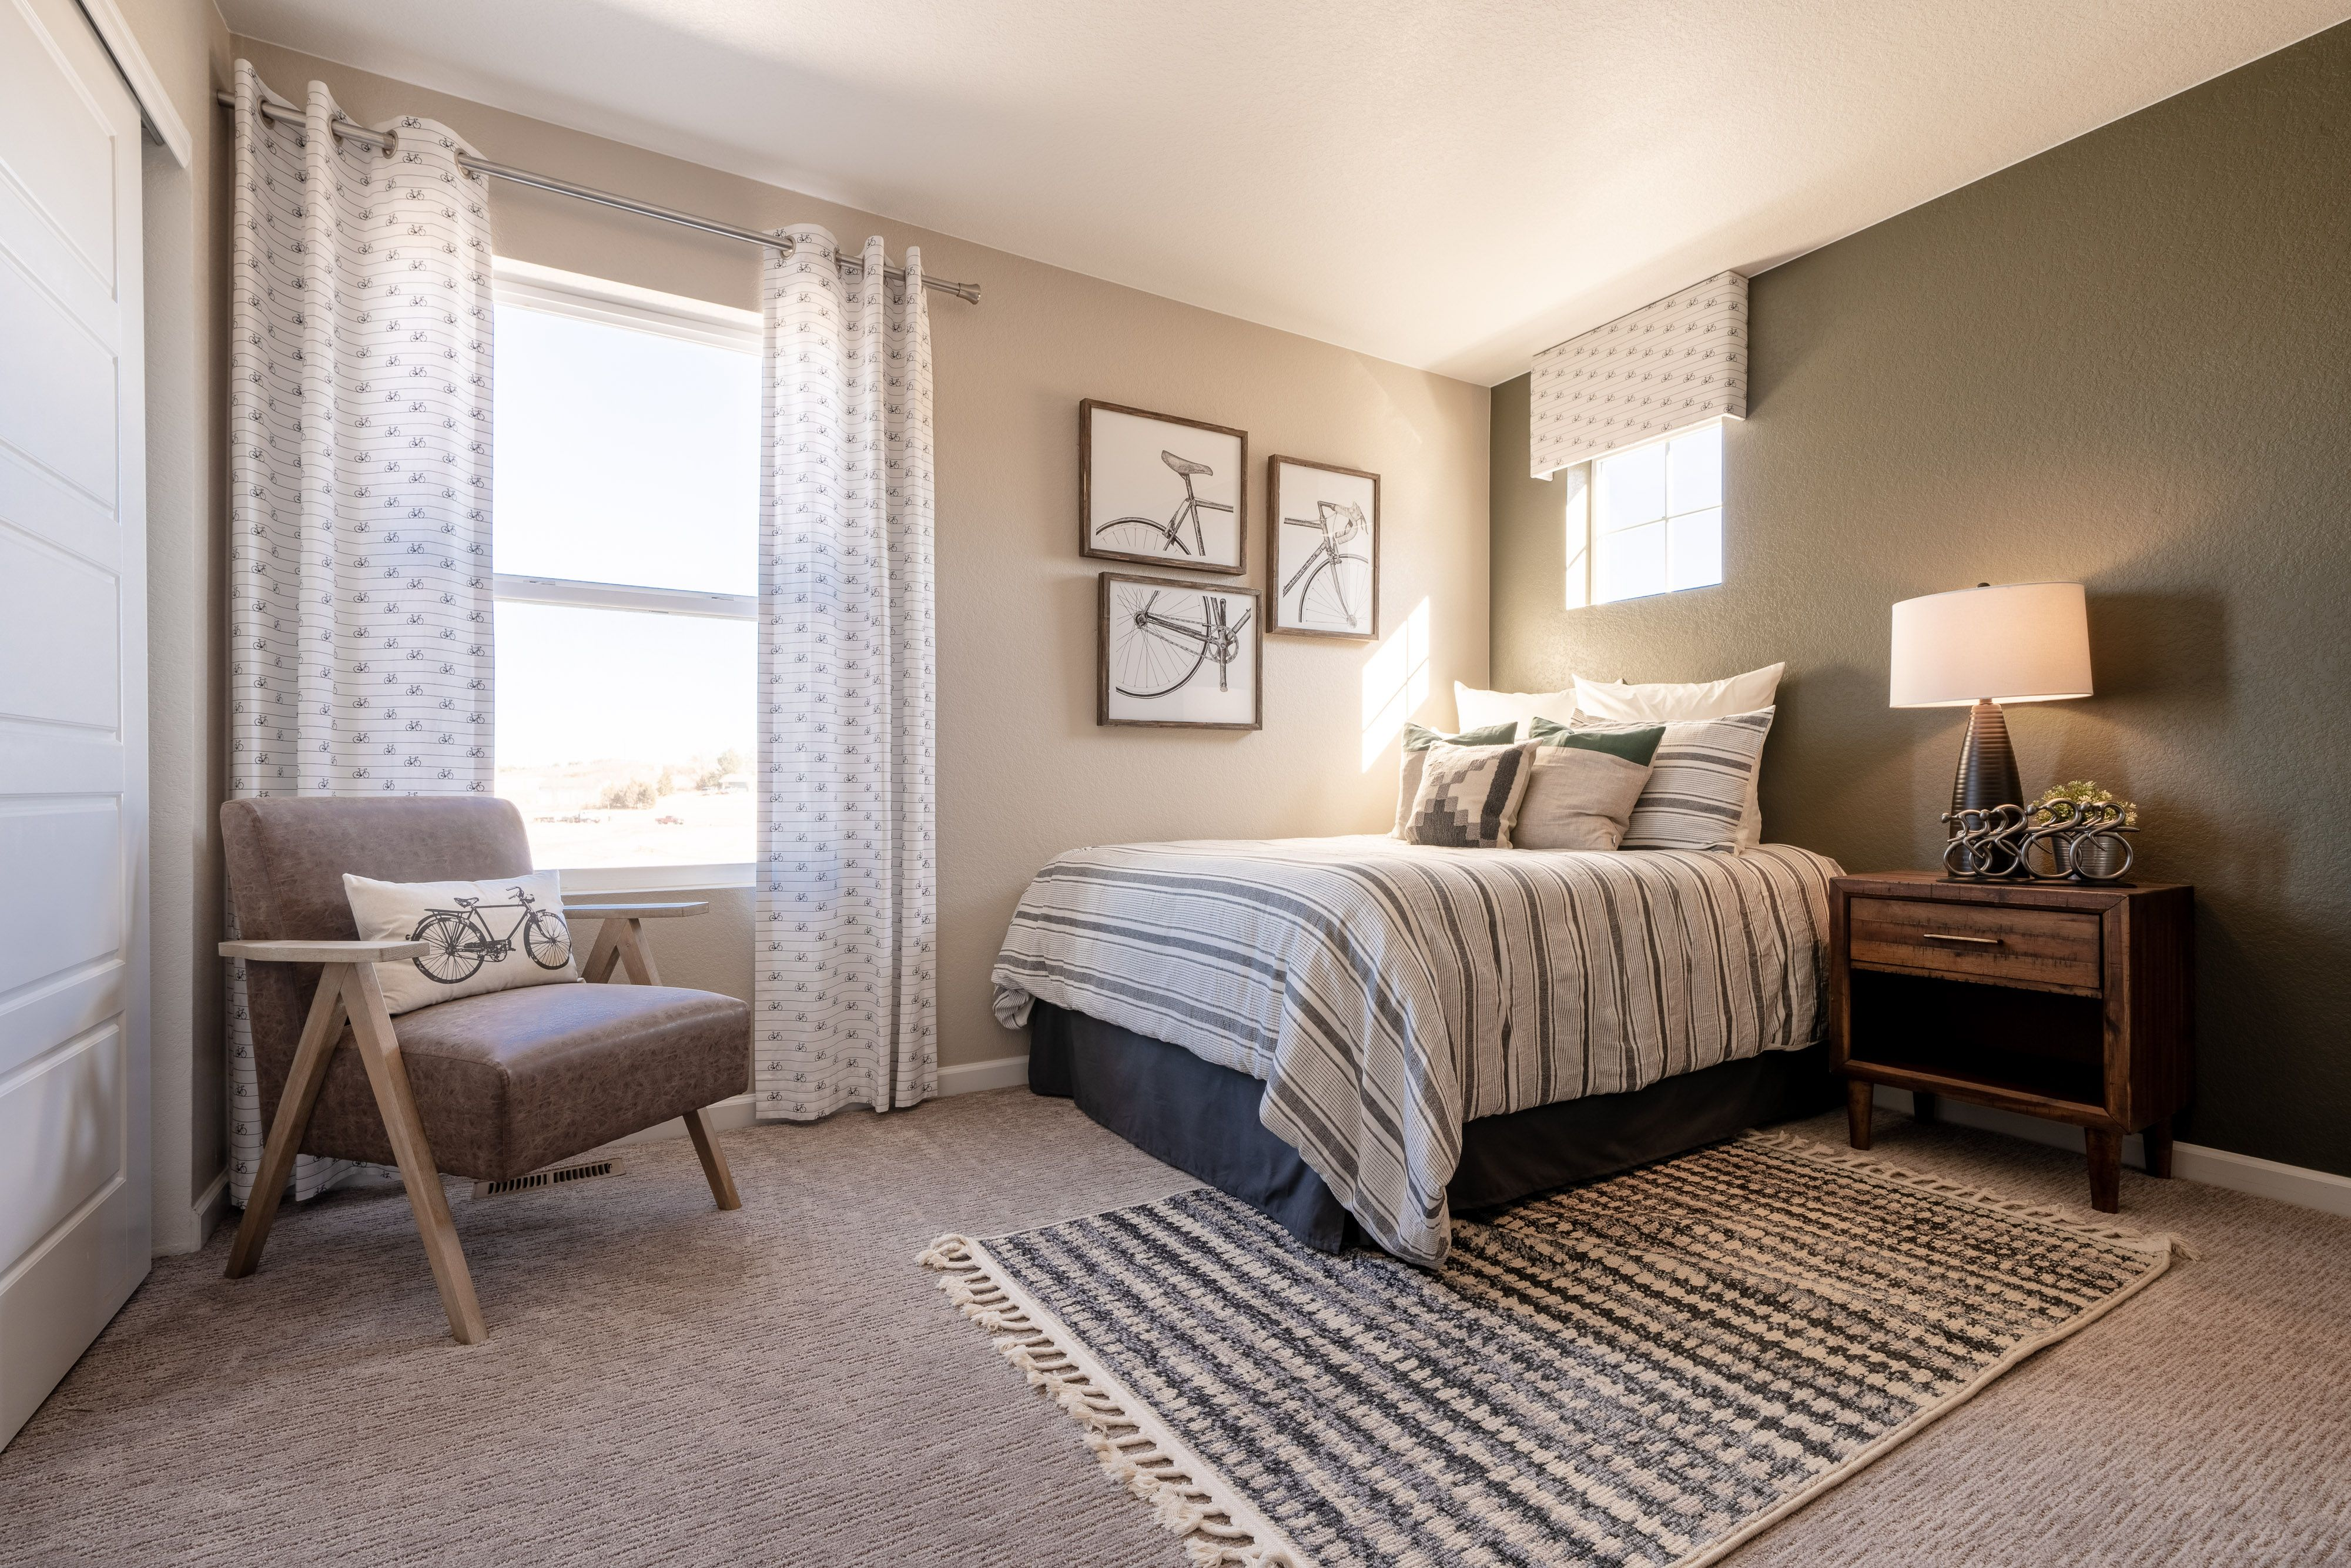 Bedroom featured in the Silverthorne By Taylor Morrison in Denver, CO